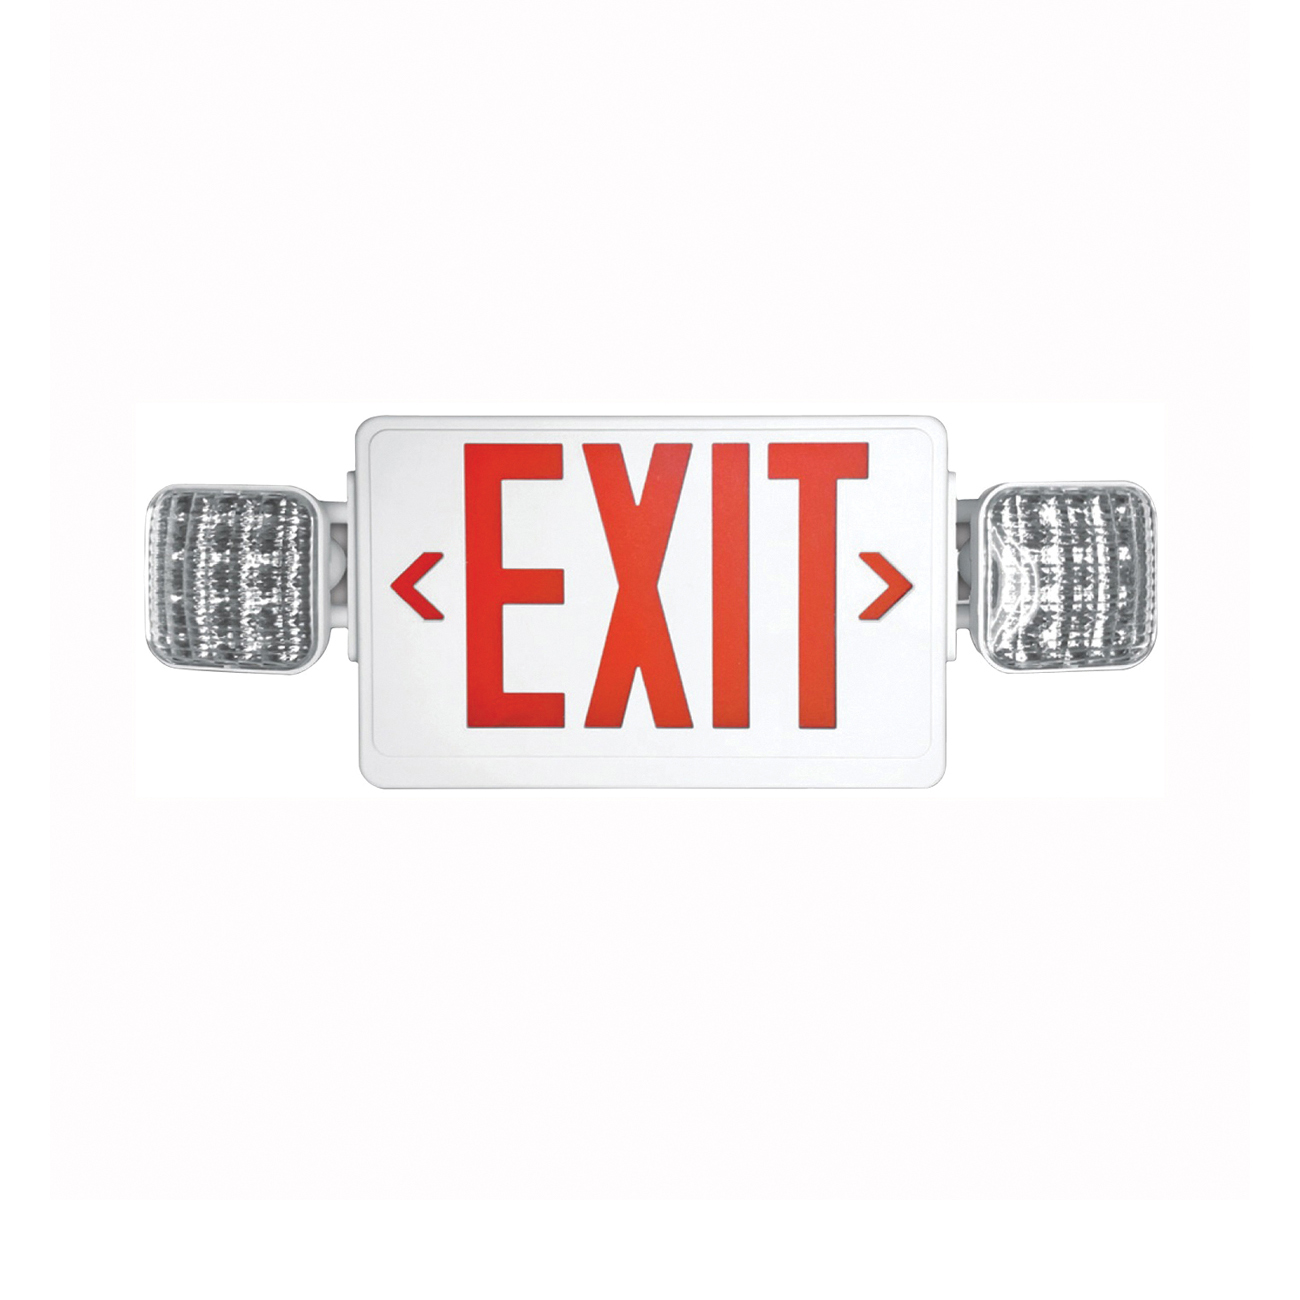 Picture of HOWARD LIGHTING HL03143RW Exit Light, 10 in OAW, 24 in OAH, 120/277 VAC, Thermoplastic Fixture, White